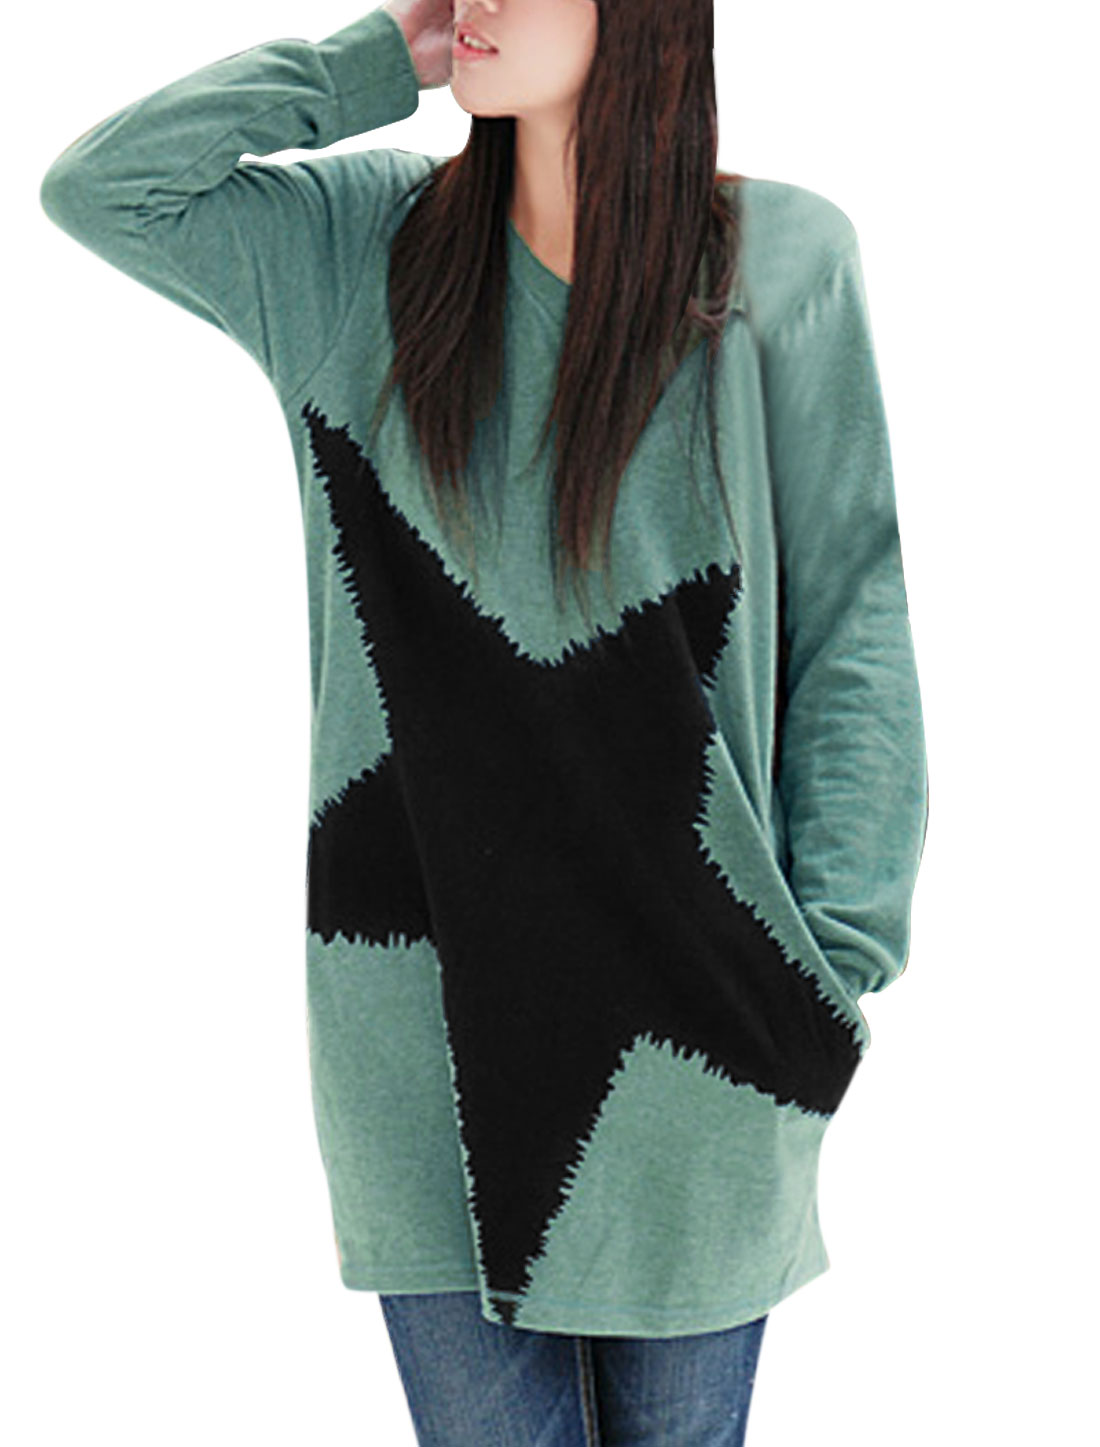 Matherhood V Neck Pullover Long Sleeve Star Pattern Tops Turquoise M